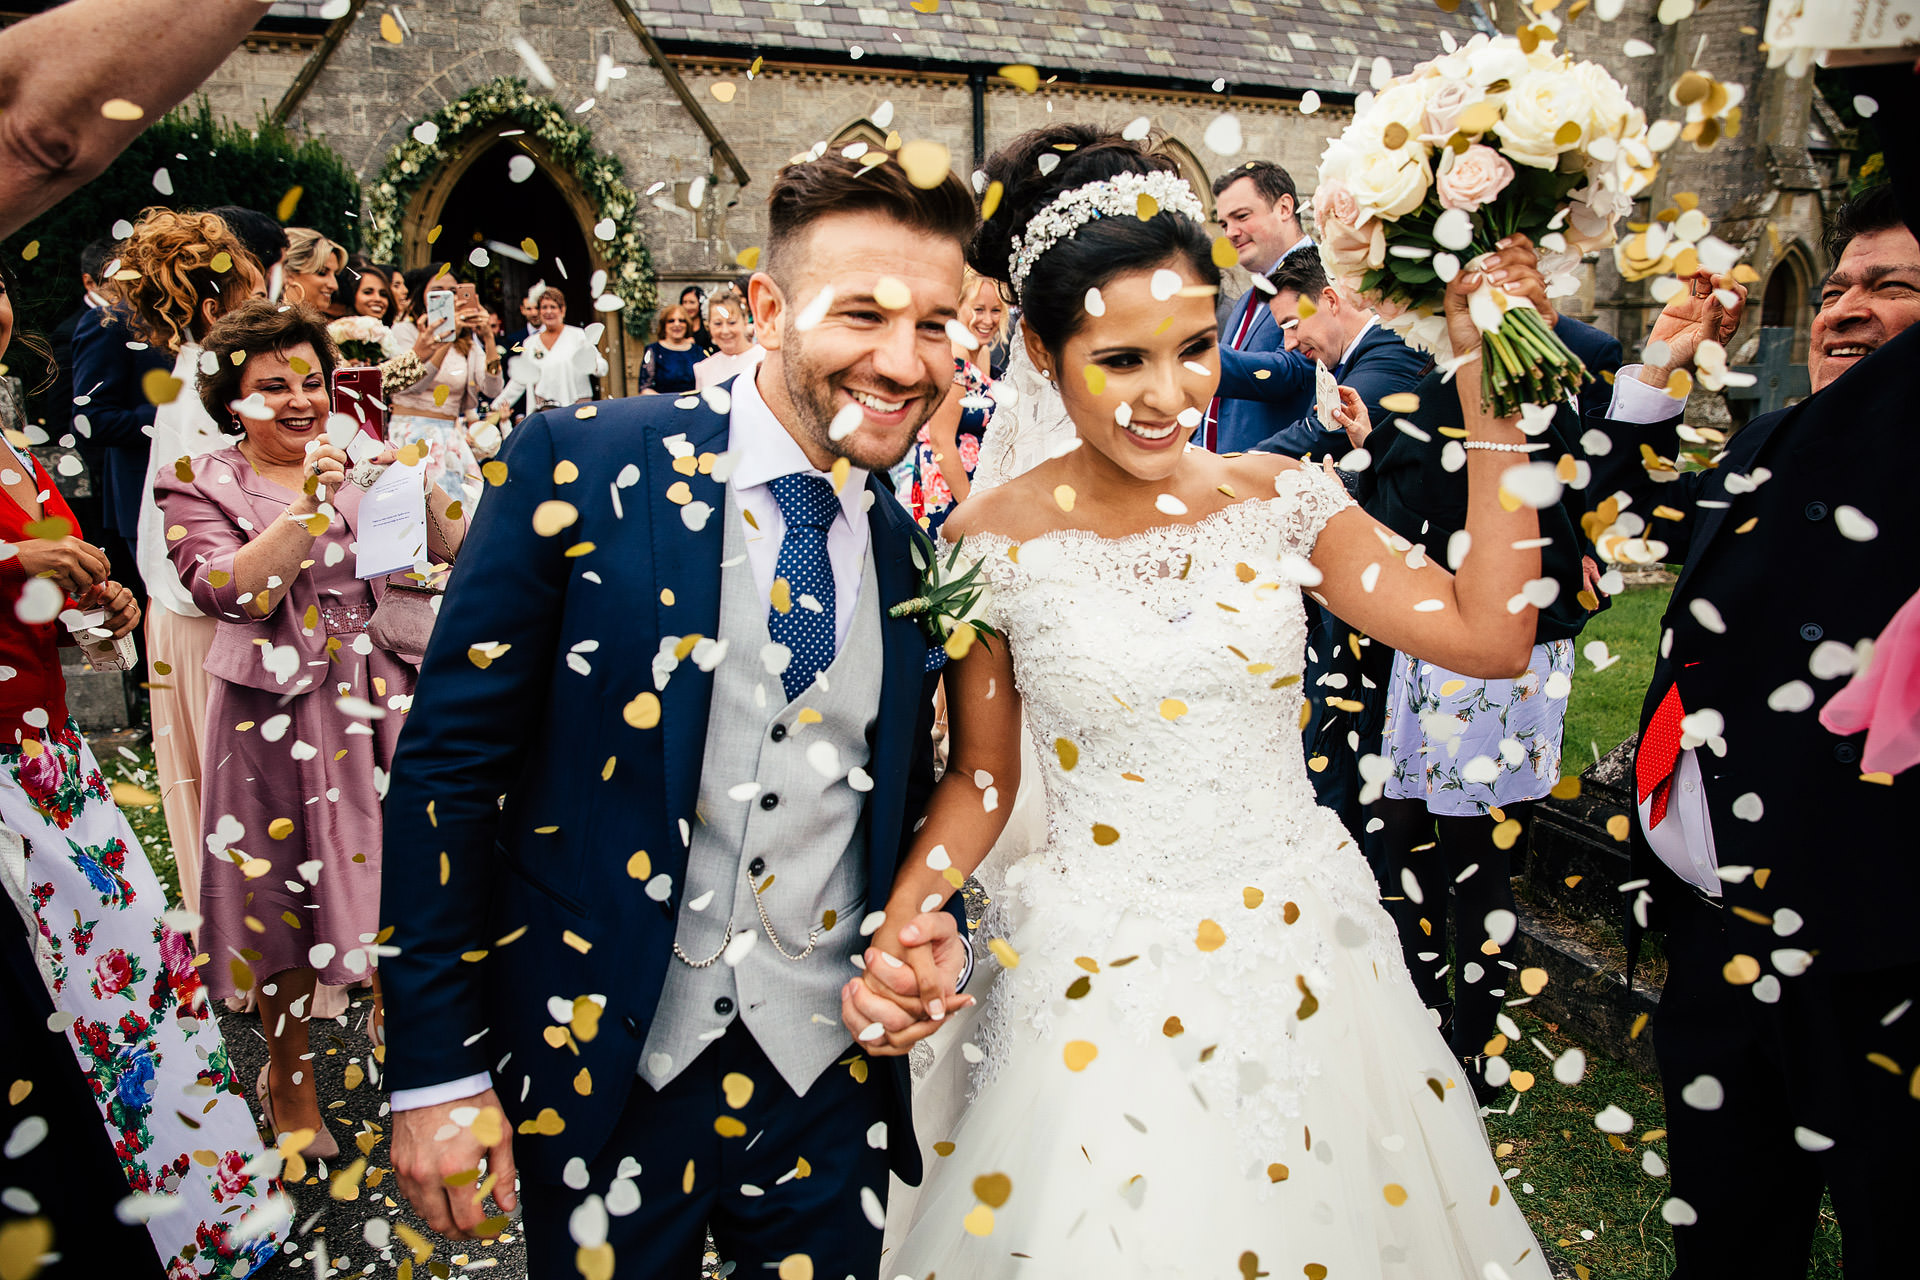 Confetti being thrown over wedding couple